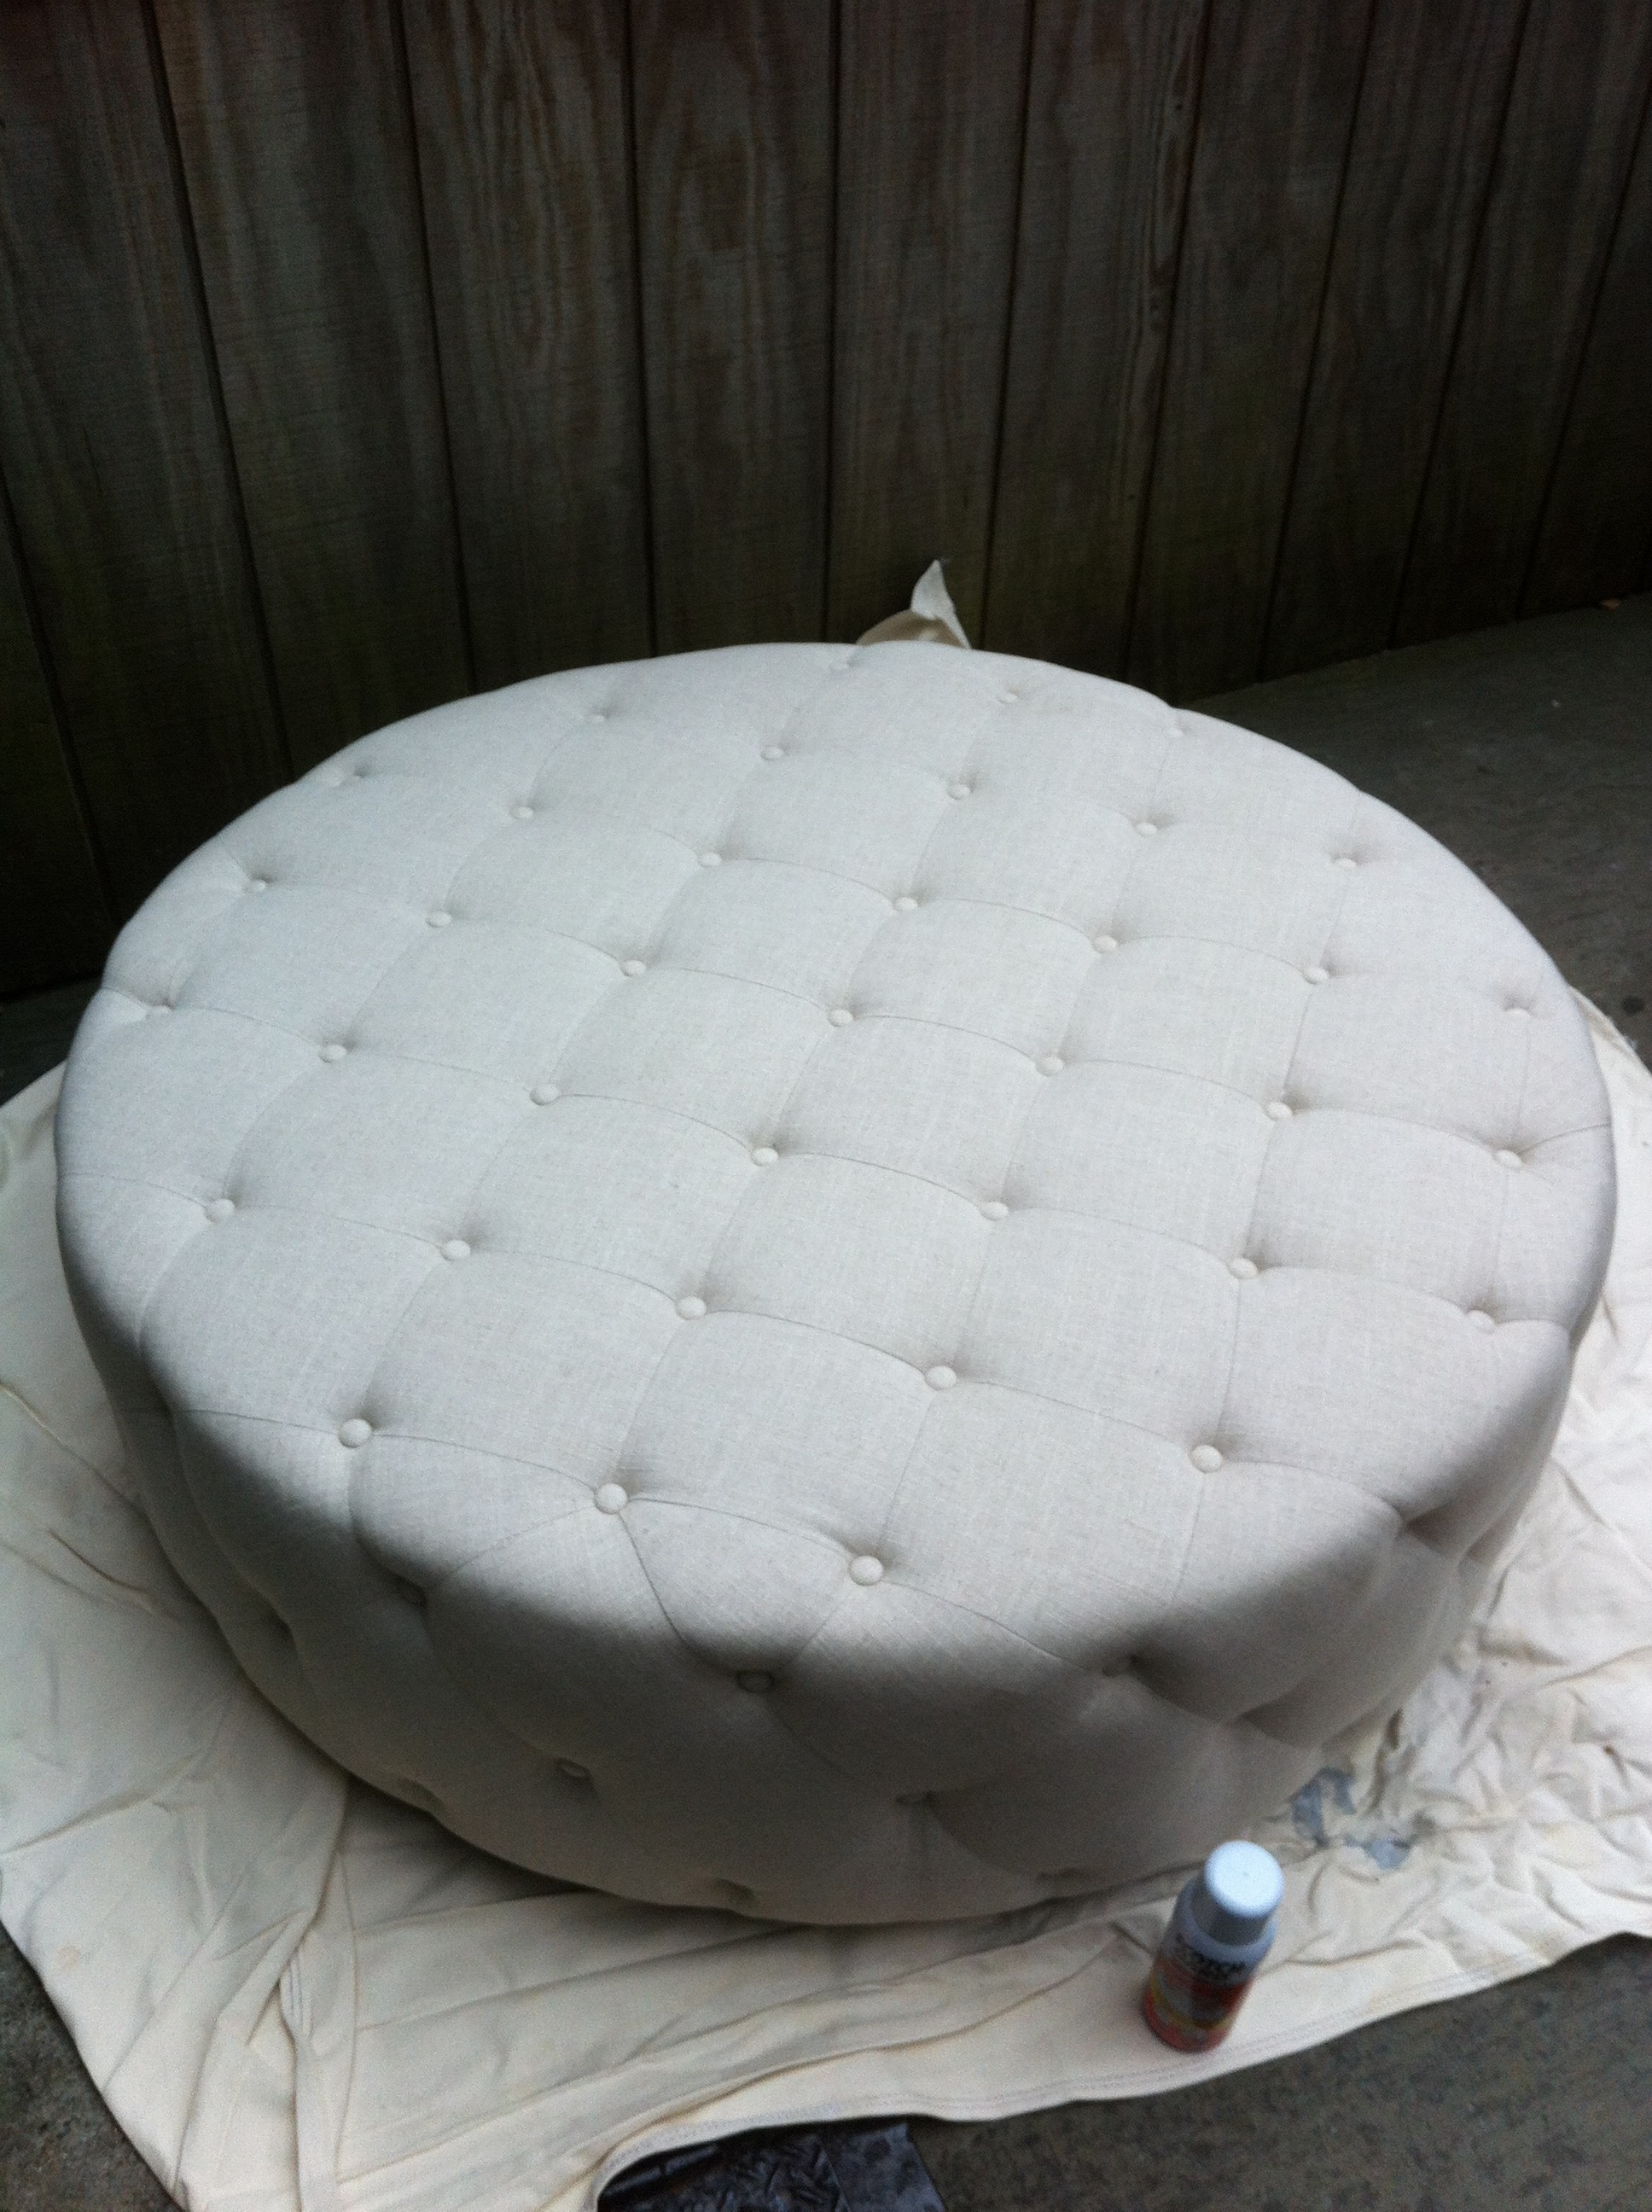 A pic of a large light upholstered ottoman for PJ Mehaffey's client